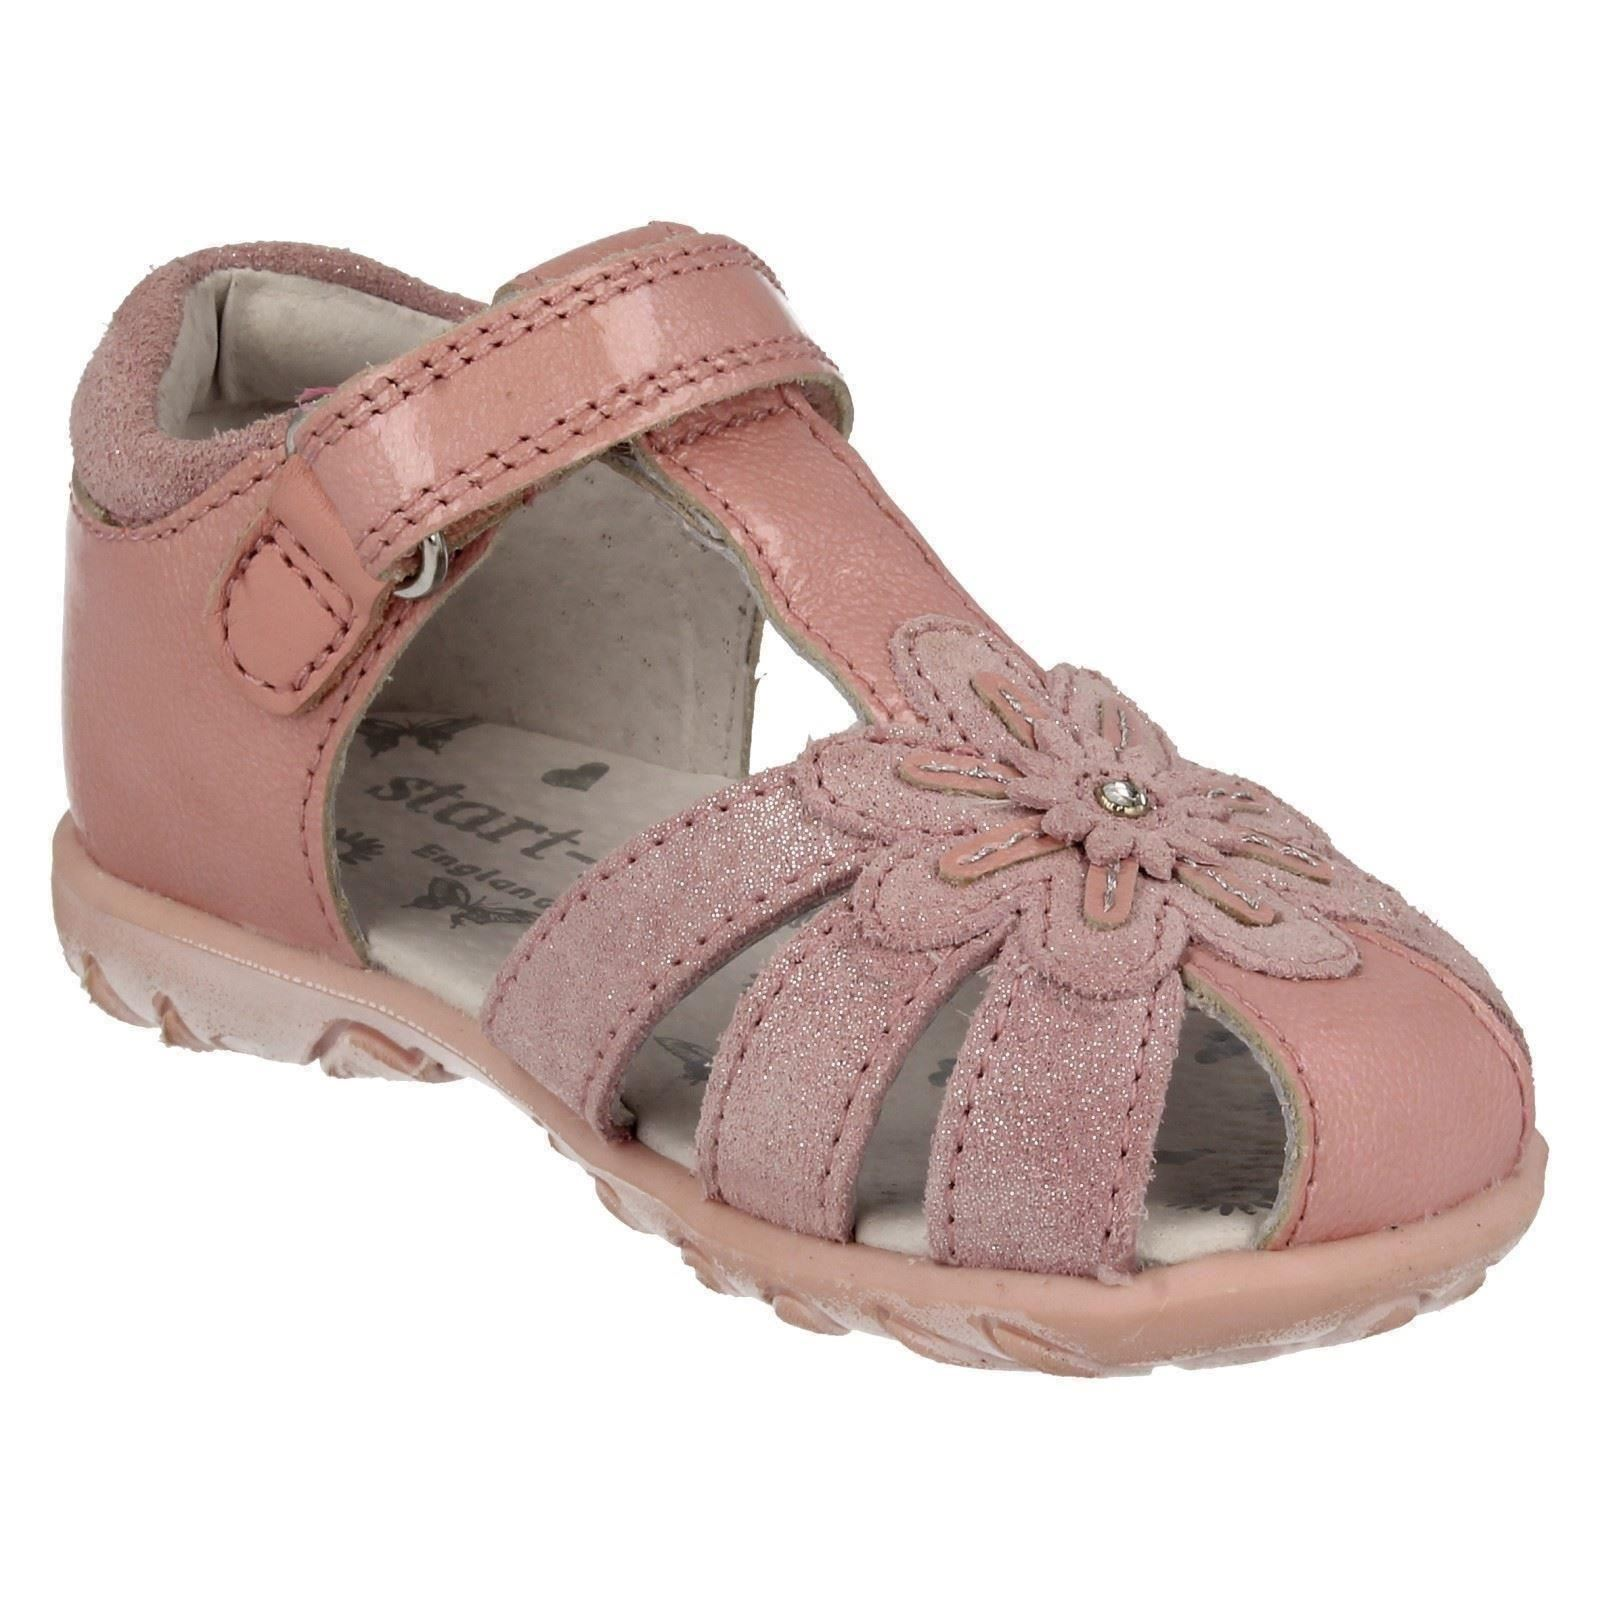 Sandals Closed Details Loop Infant Leather Primrose Toe About Startrite Girls Hookamp; kuOXiPZT